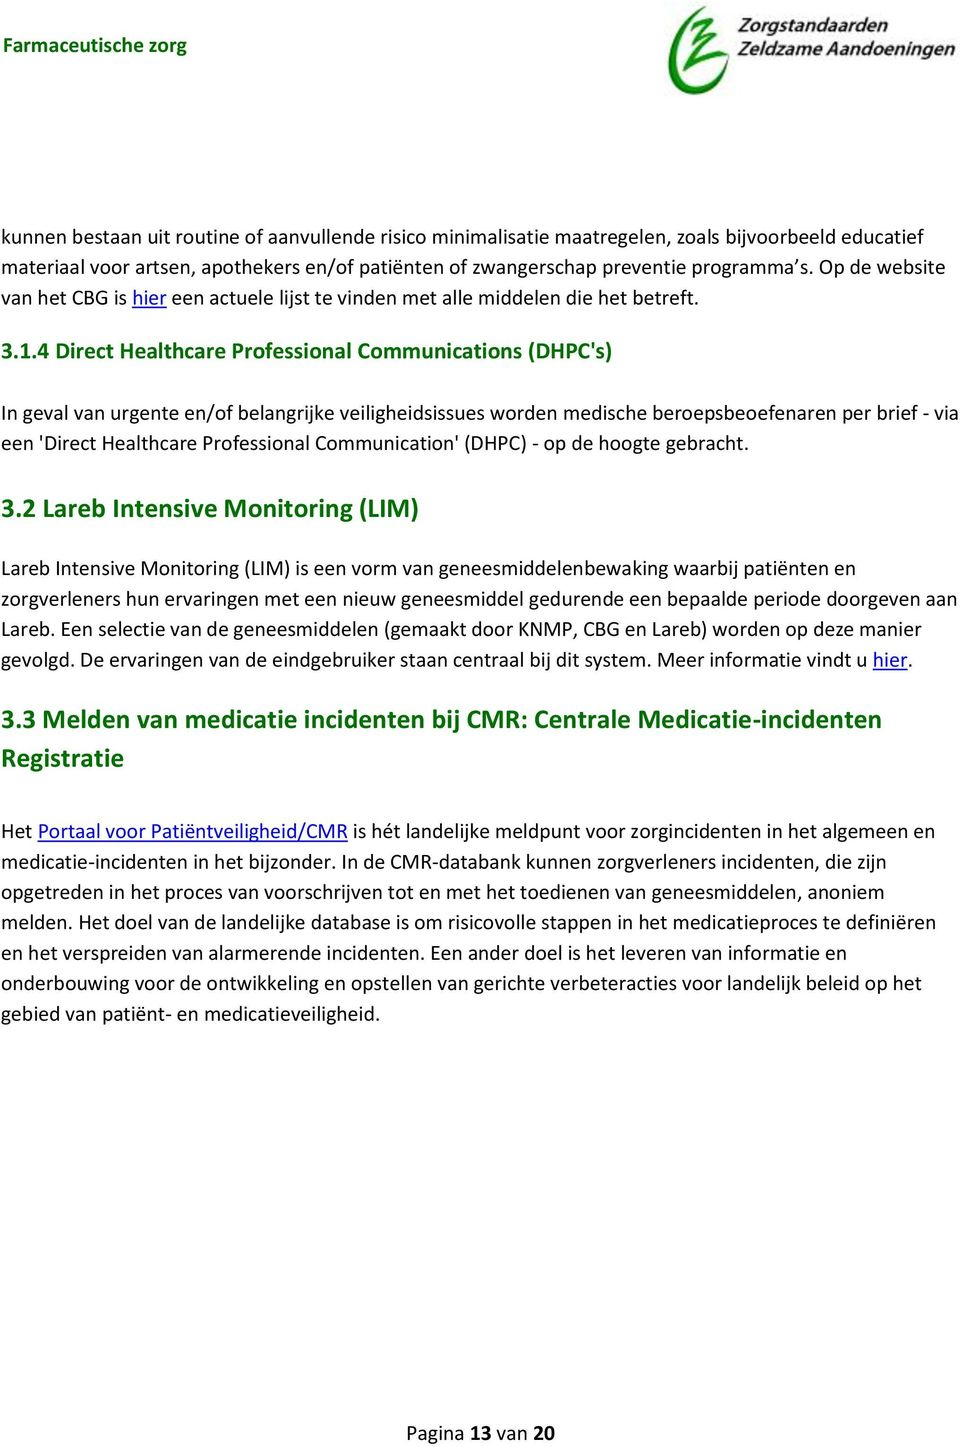 4 Direct Healthcare Professional Communications (DHPC's) In geval van urgente en/of belangrijke veiligheidsissues worden medische beroepsbeoefenaren per brief - via een 'Direct Healthcare